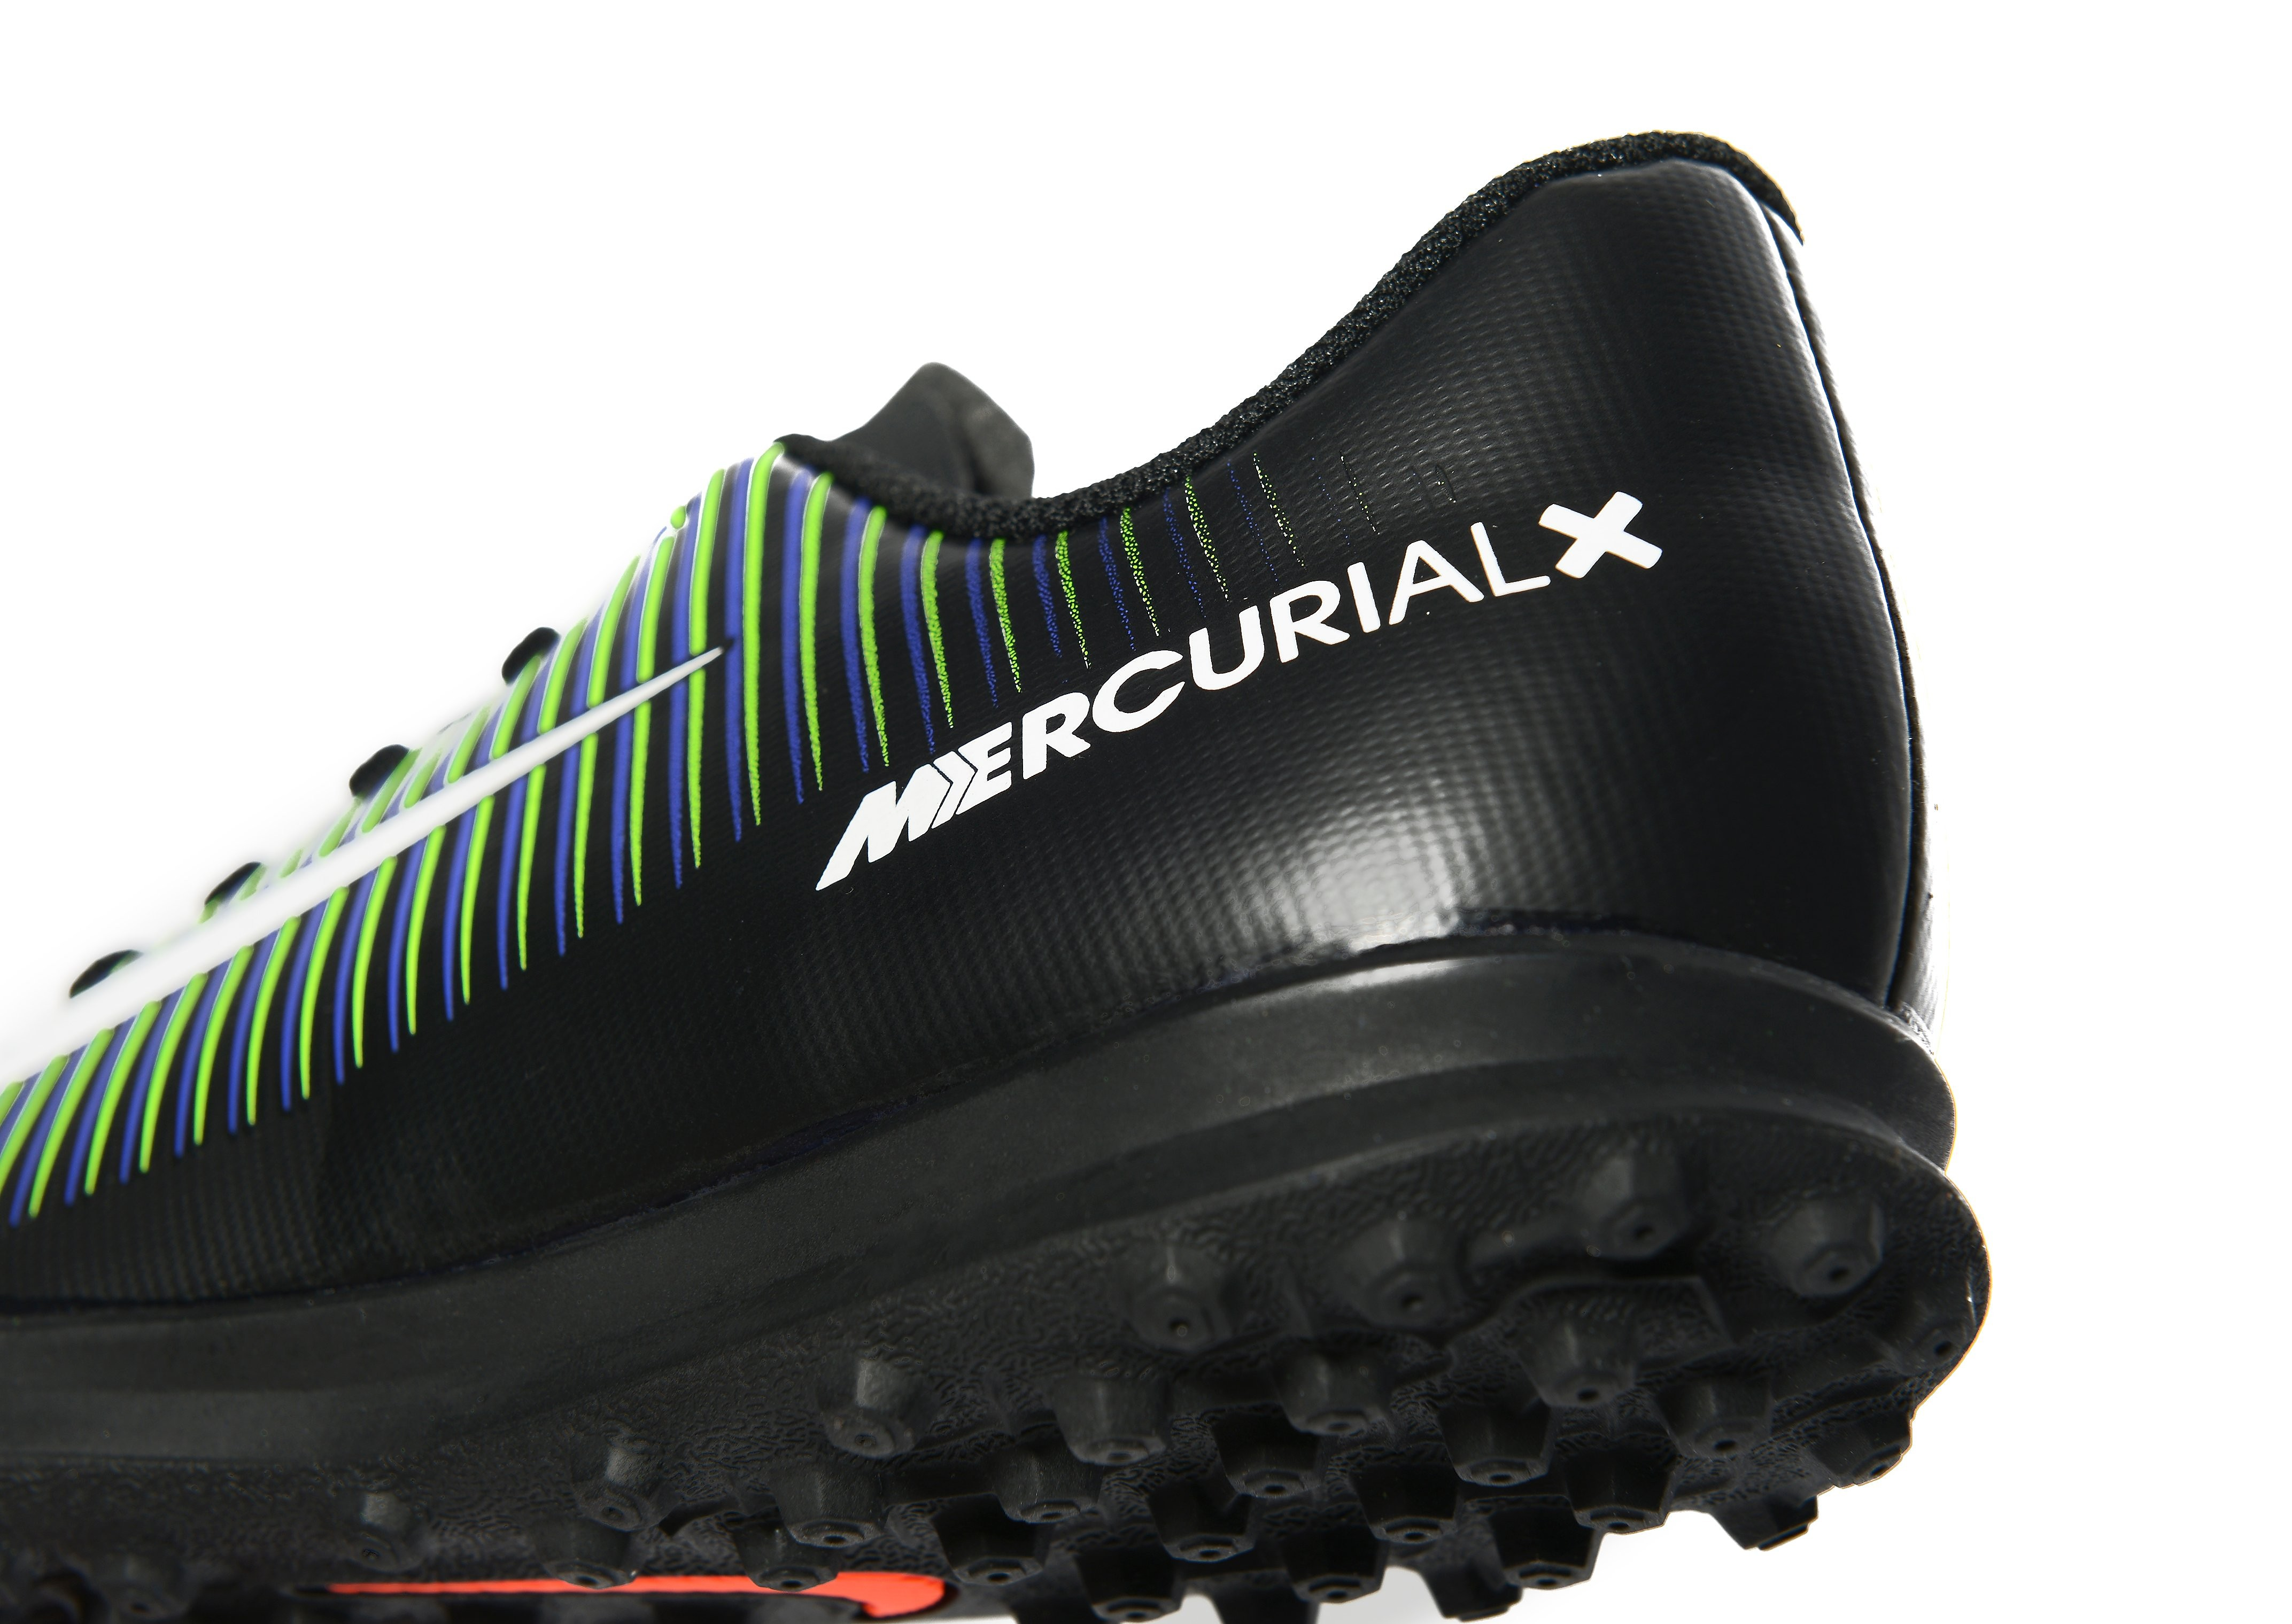 Nike Dark Lightning MercurialX Vortex III Turf Children